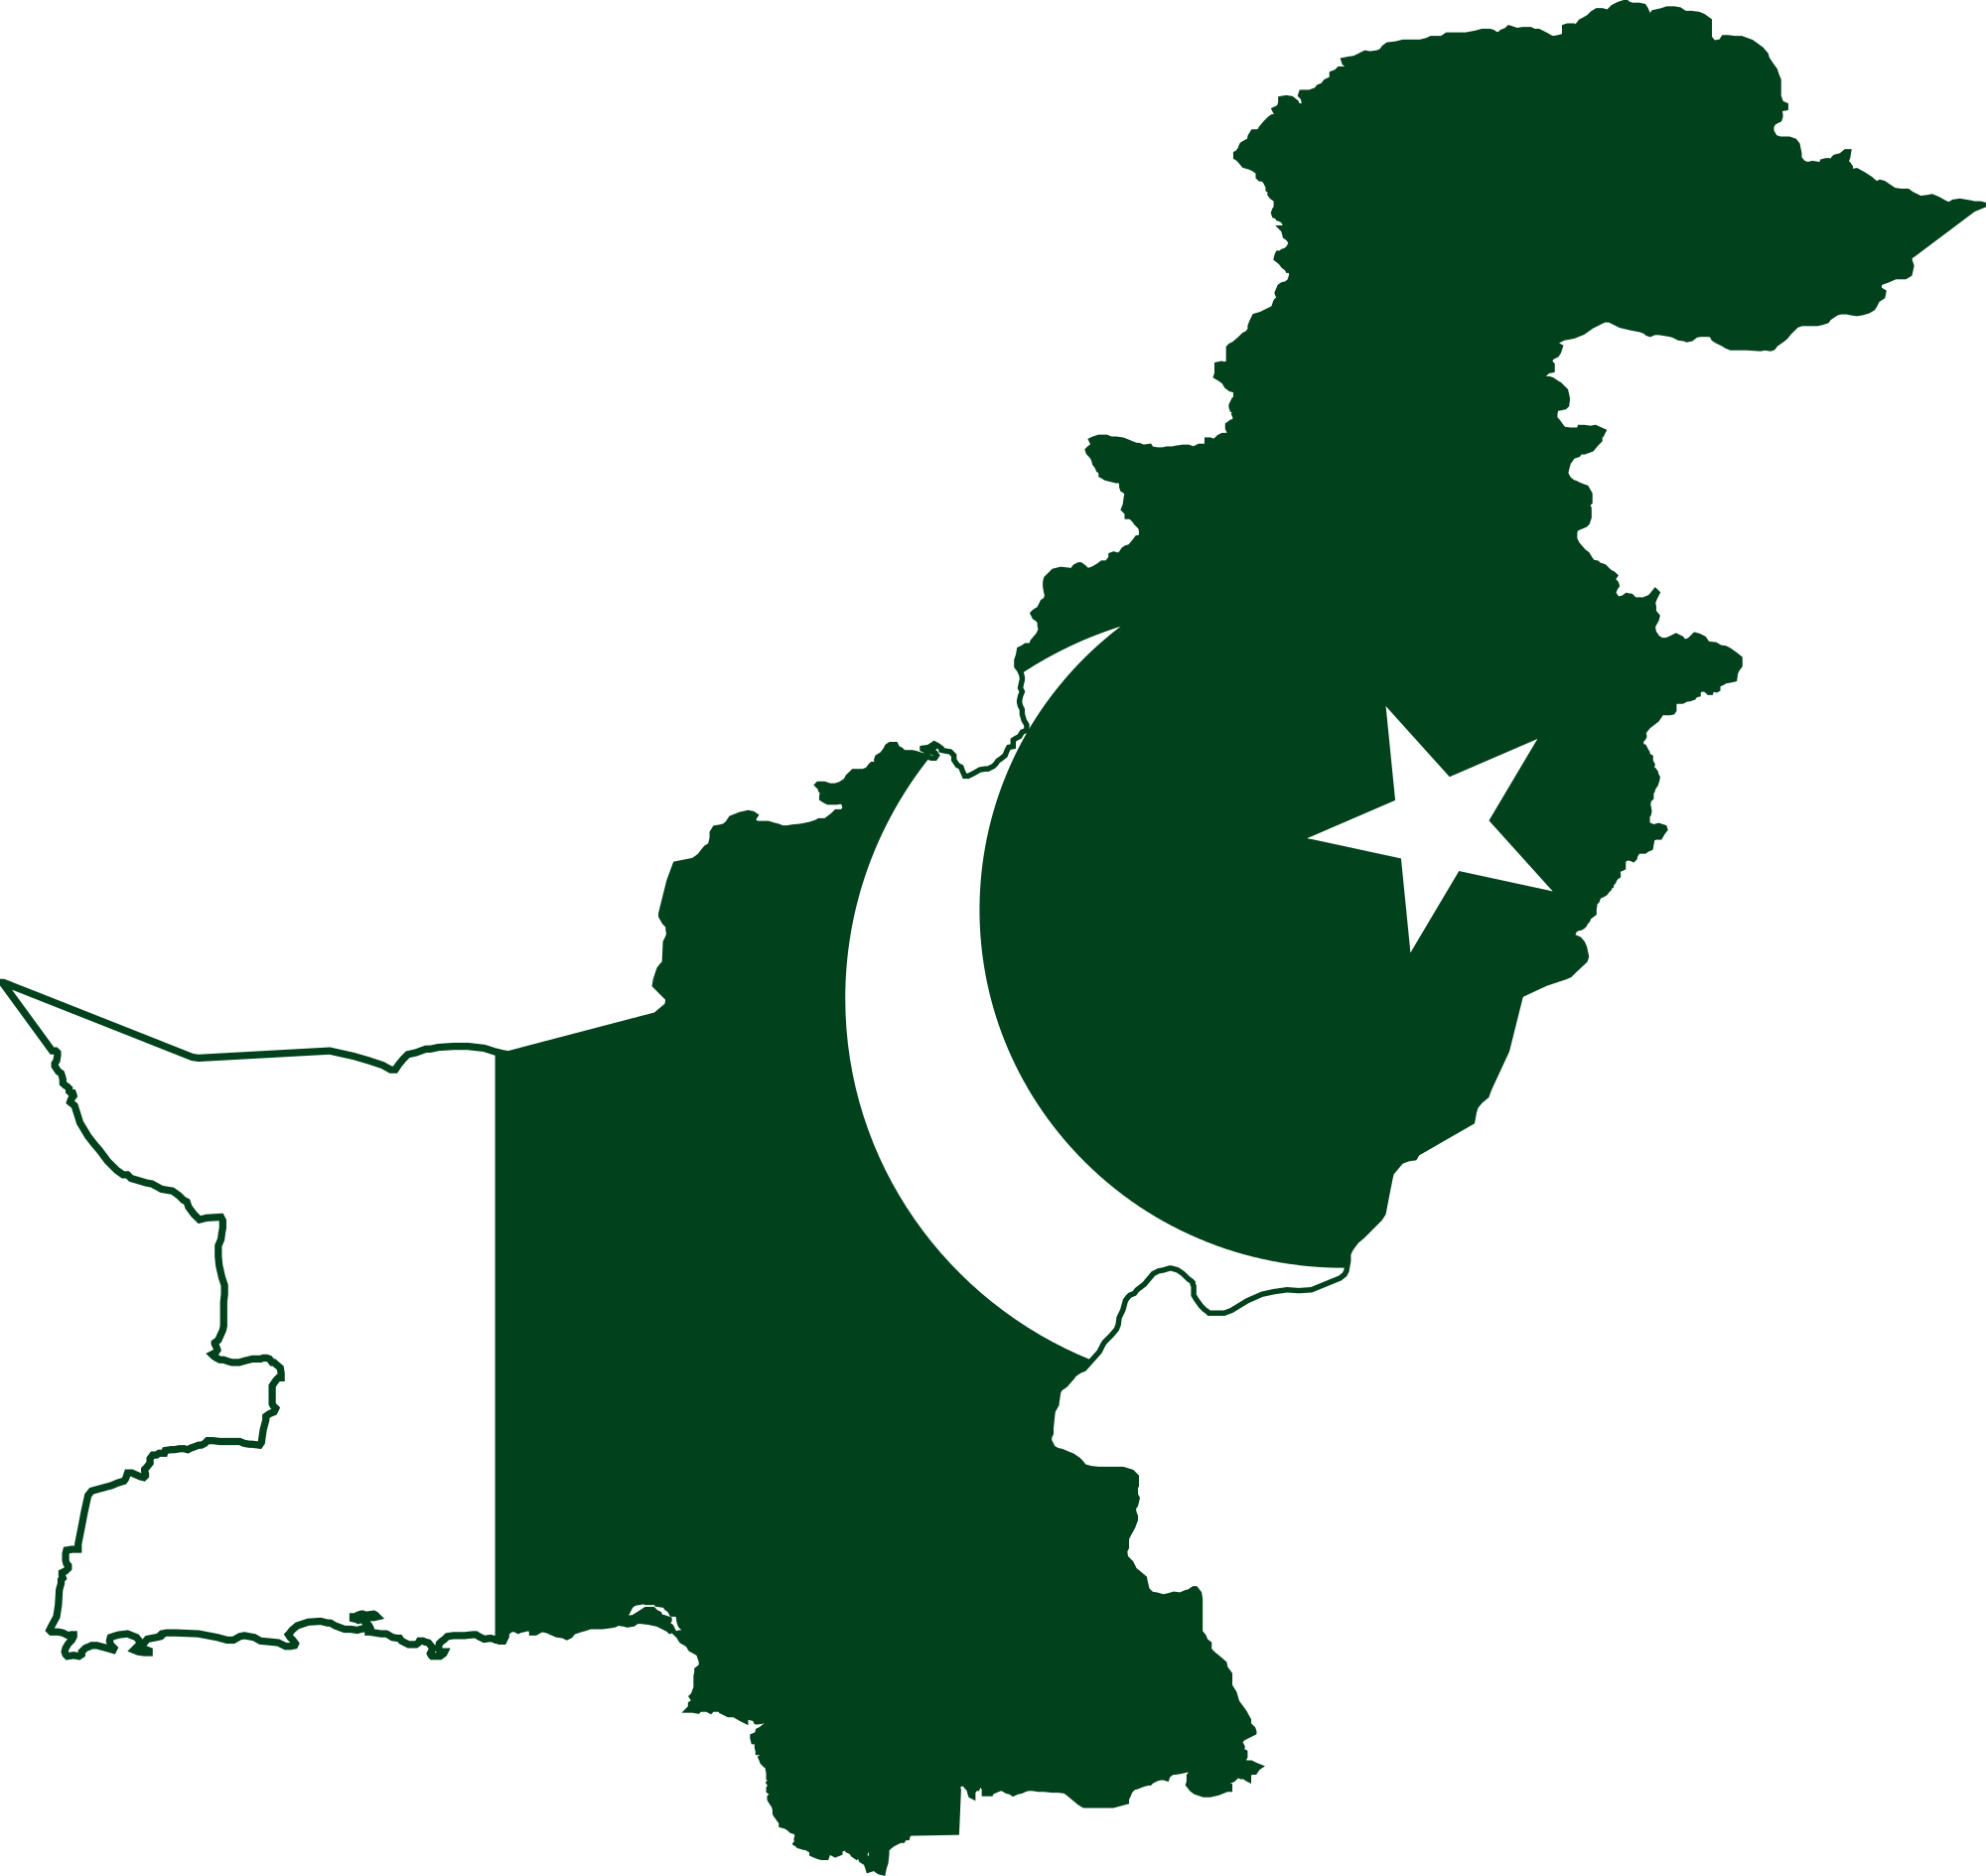 Pakistan - General Image